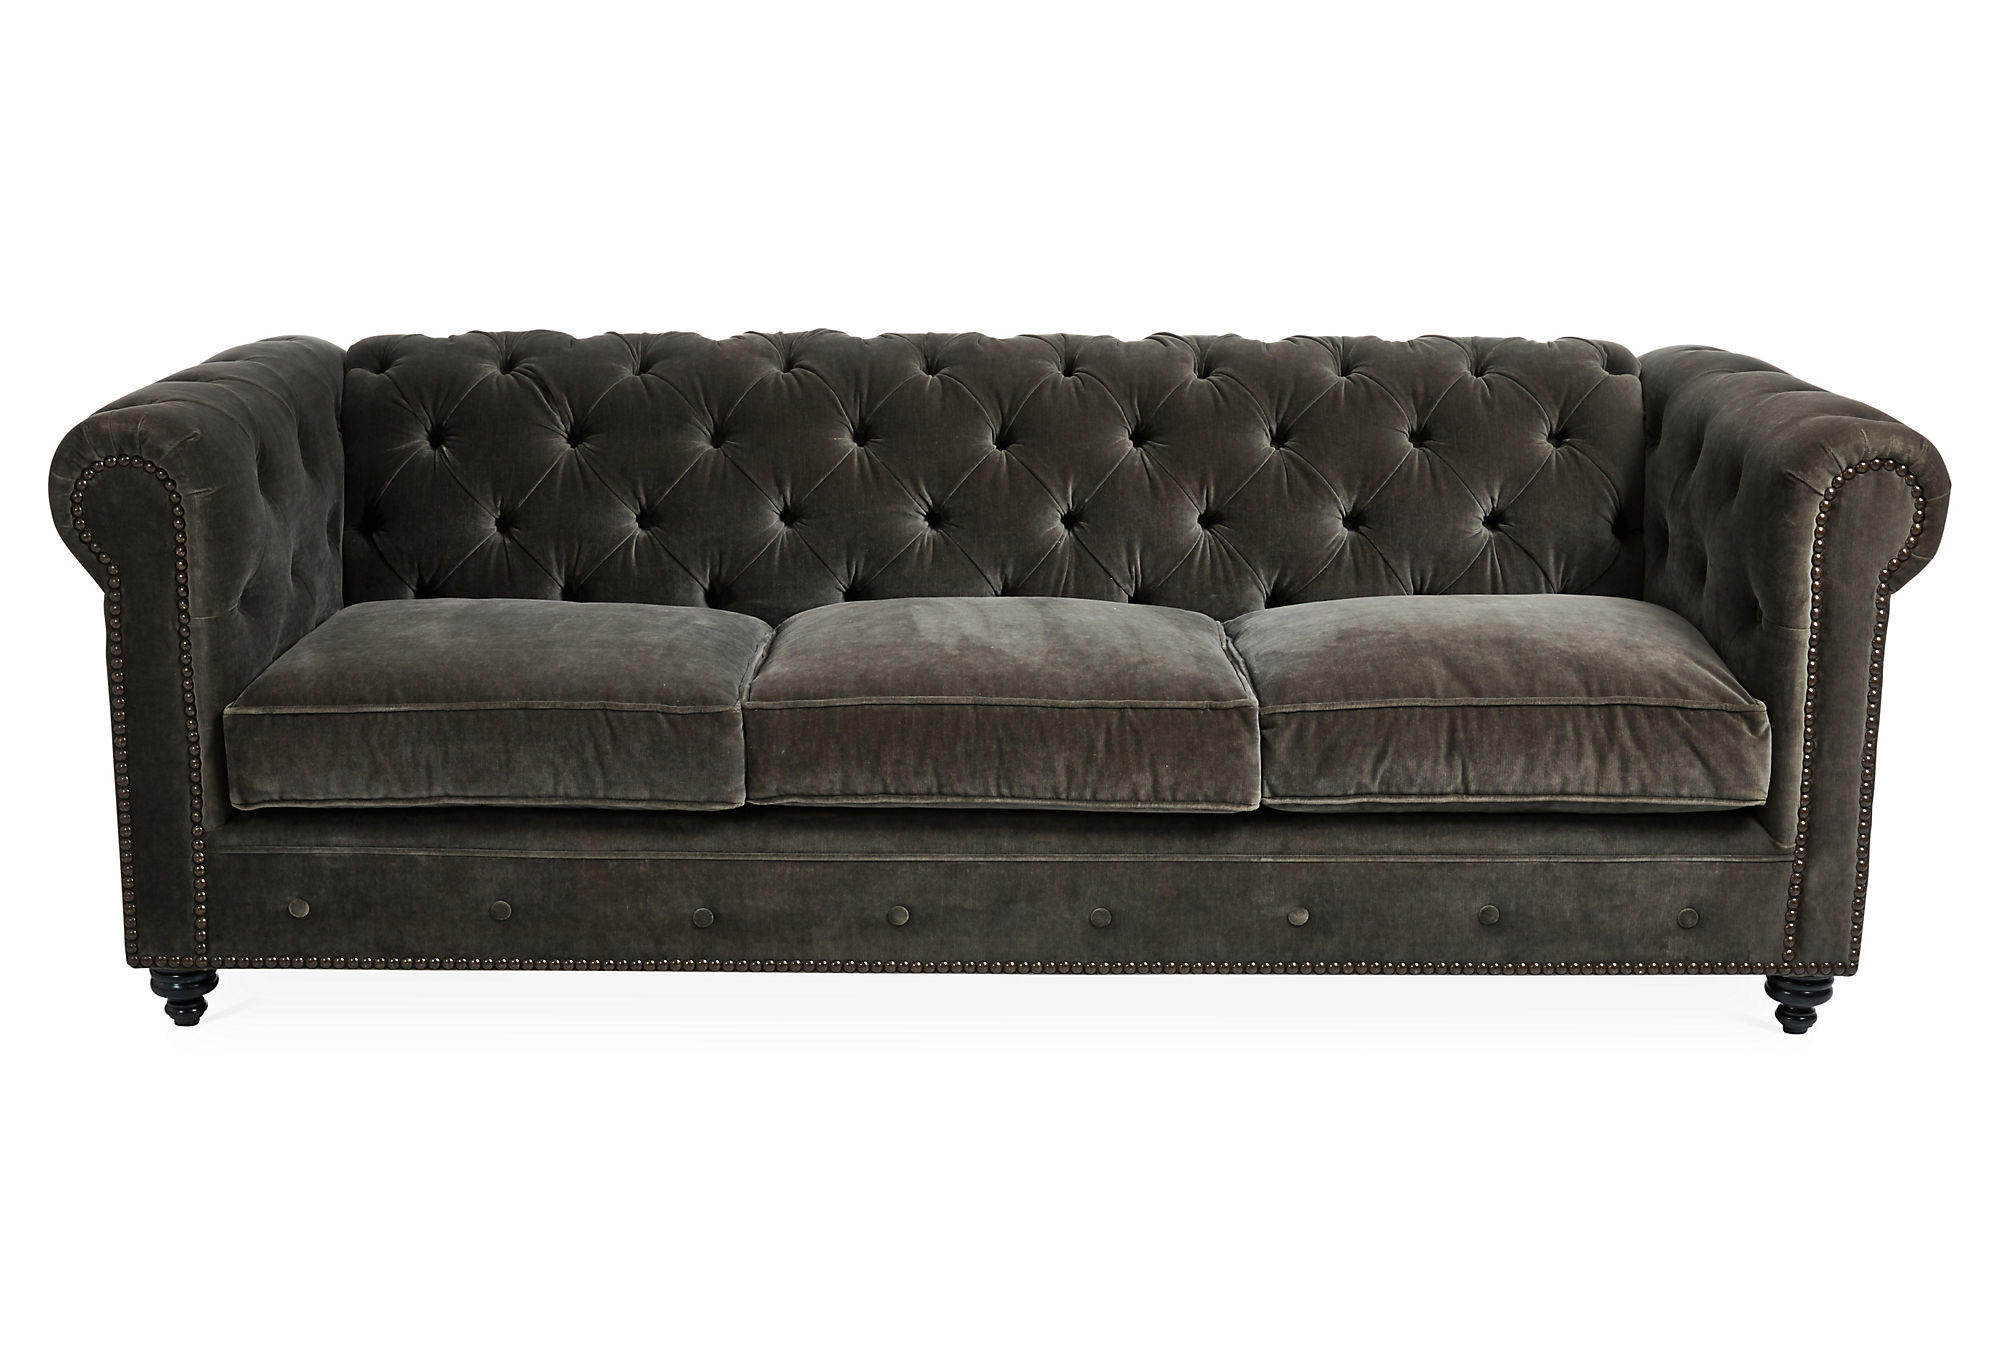 ralph 96 quot  tufted velvet sofa  dark gray  from one kings lane tufted velvet sofa furniture Black Velvet Tufted Sofa